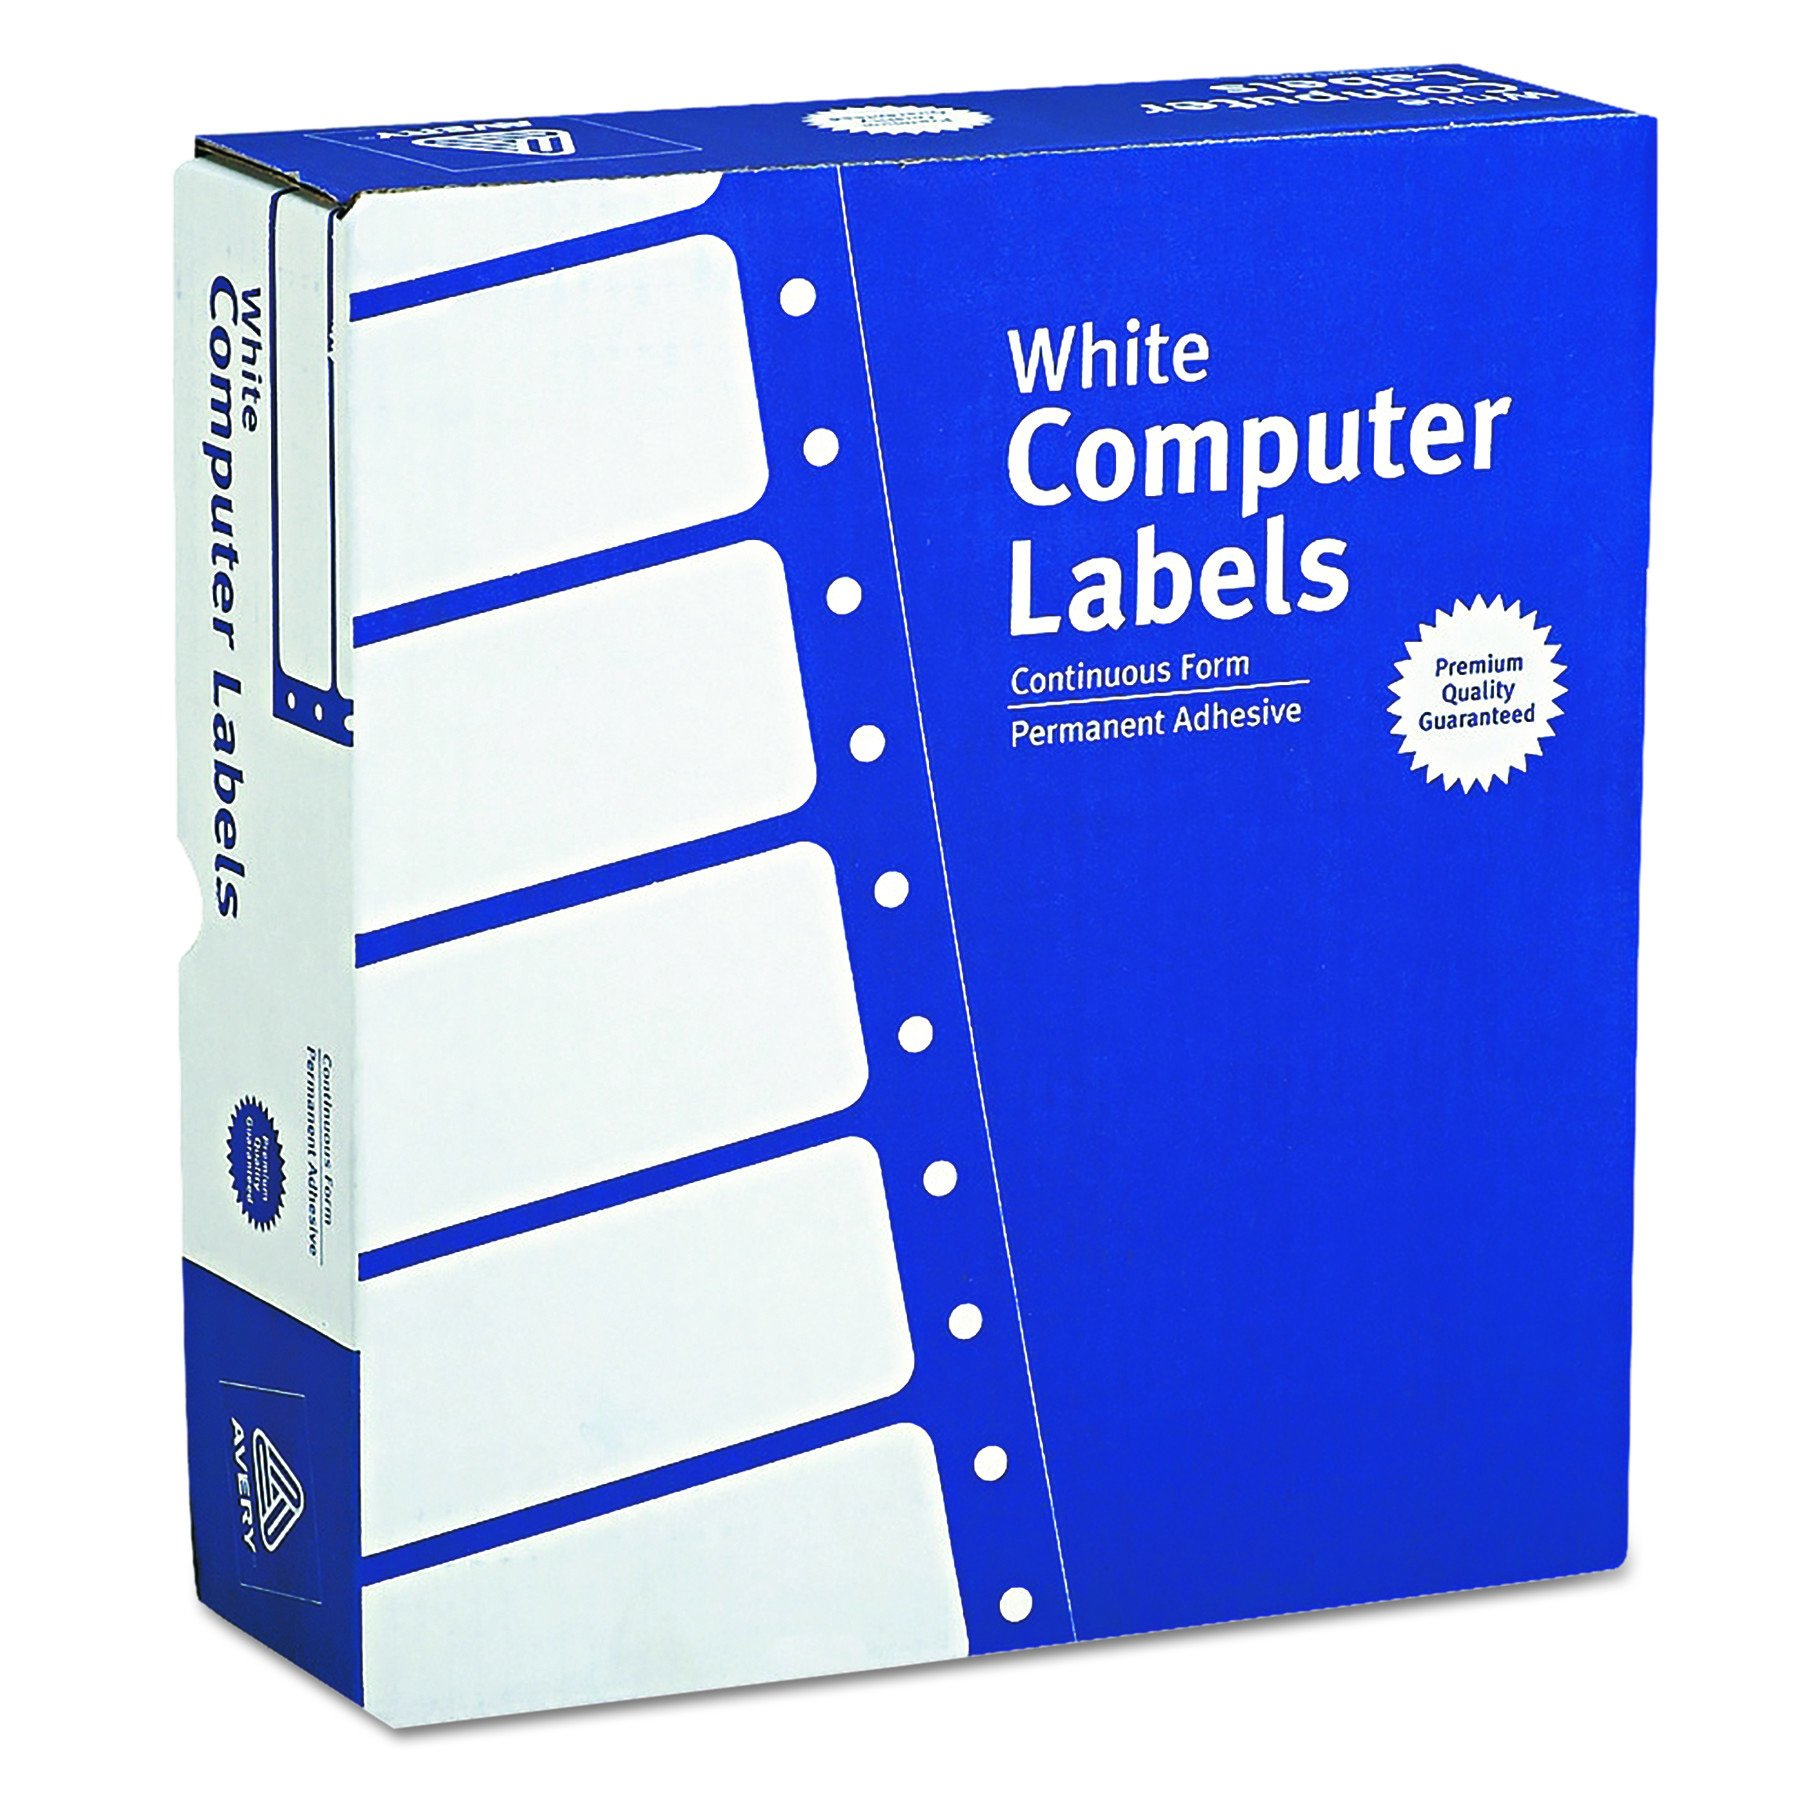 Avery Continuous Form Computer Labels for Pin-Fed Printers 3-1/2'' x 15/16'', Box of 15,000 (4031)